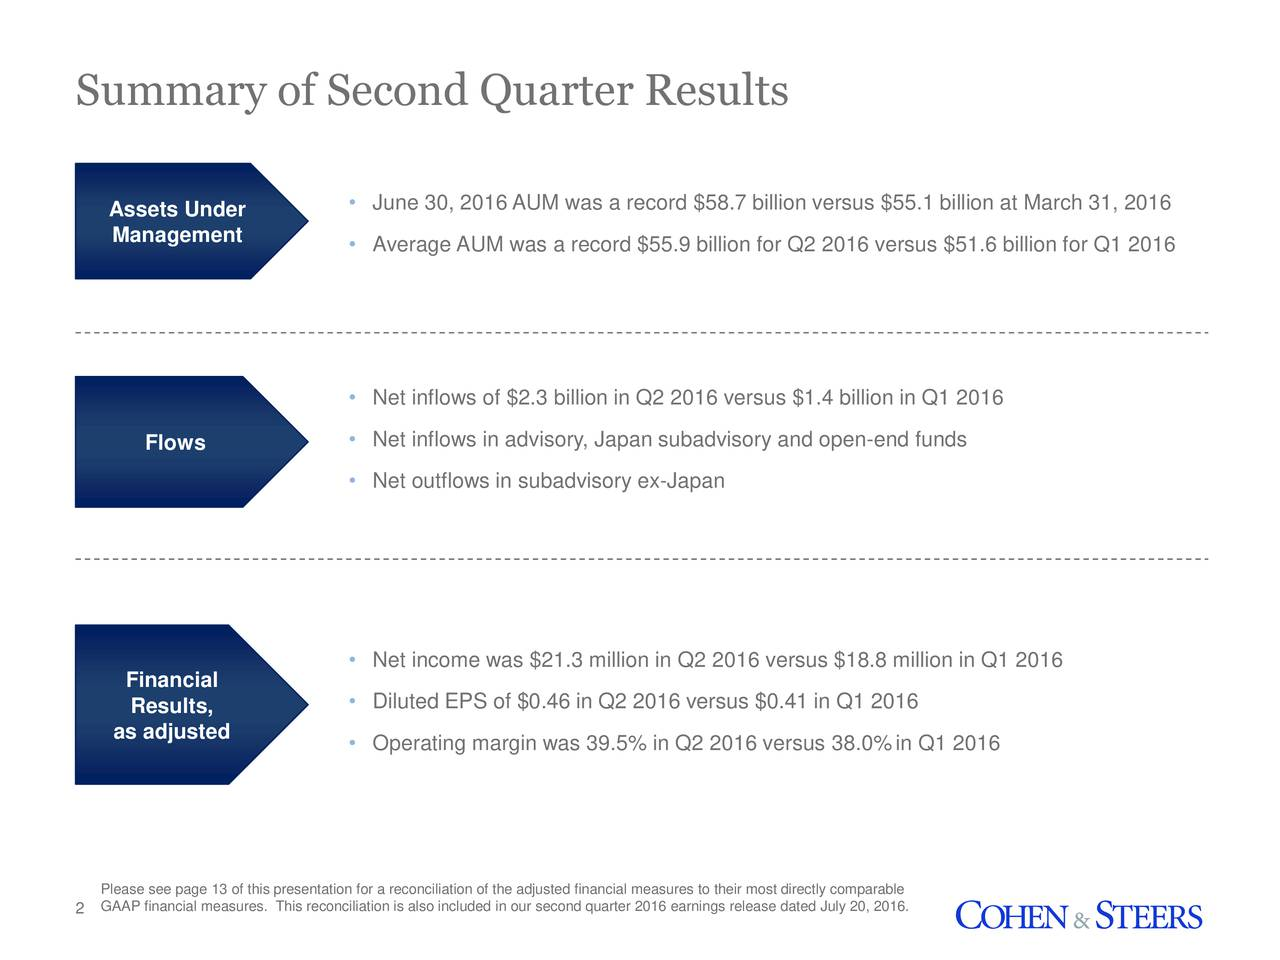 Assets Under  June 30, 2016 AUM was a record $58.7 billion versus $55.1 billion at March 31, 2016 Management Average AUM was a record $55.9 billion for Q2 2016 versus $51.6 billion for Q1 2016 Net inflows of $2.3 billion in Q2 2016 versus $1.4 billion in Q1 2016 Flows  Net inflows in advisory, Japan subadvisory and open-end funds Net outflows in subadvisory ex-Japan Net income was $21.3 million in Q2 2016 versus $18.8 million in Q1 2016 Financial Results,  Diluted EPS of $0.46 in Q2 2016 versus $0.41 in Q1 2016 as adjusted  Operating margin was 39.5% in Q2 2016 versus 38.0%in Q1 2016 Please see page 13 of this presentation for a reconciliation of the adjusted financial measures to their most directly comparable 2 GAAP financial measures. This reconciliation is also included in our second quarter 2016 earnings release dated July 20, 2016.